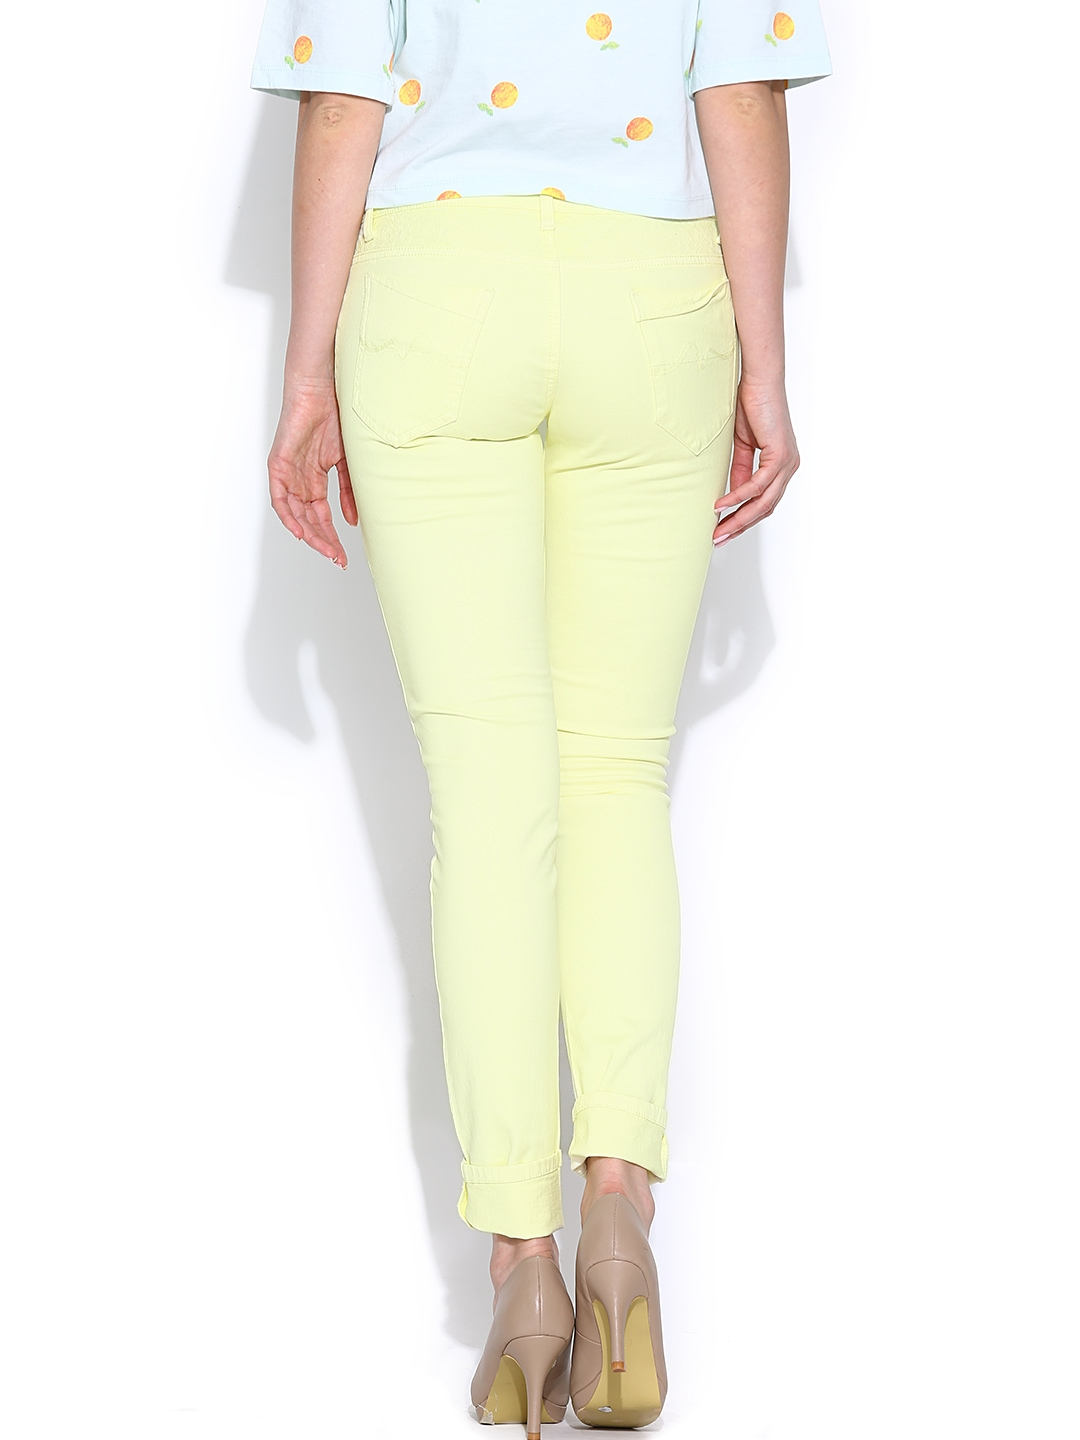 7 For All Mankind The Ankle Skinny Jeans in Vivid Yellow-Women. See at Bloomingdale's. LINKSHARE. 7 For All Mankind 7 For All Mankind The Ankle Skinny Jeans in Vivid Yellow Bloomingdale's $ $ J Brand. J Brand super skinny jeans - Yellow .